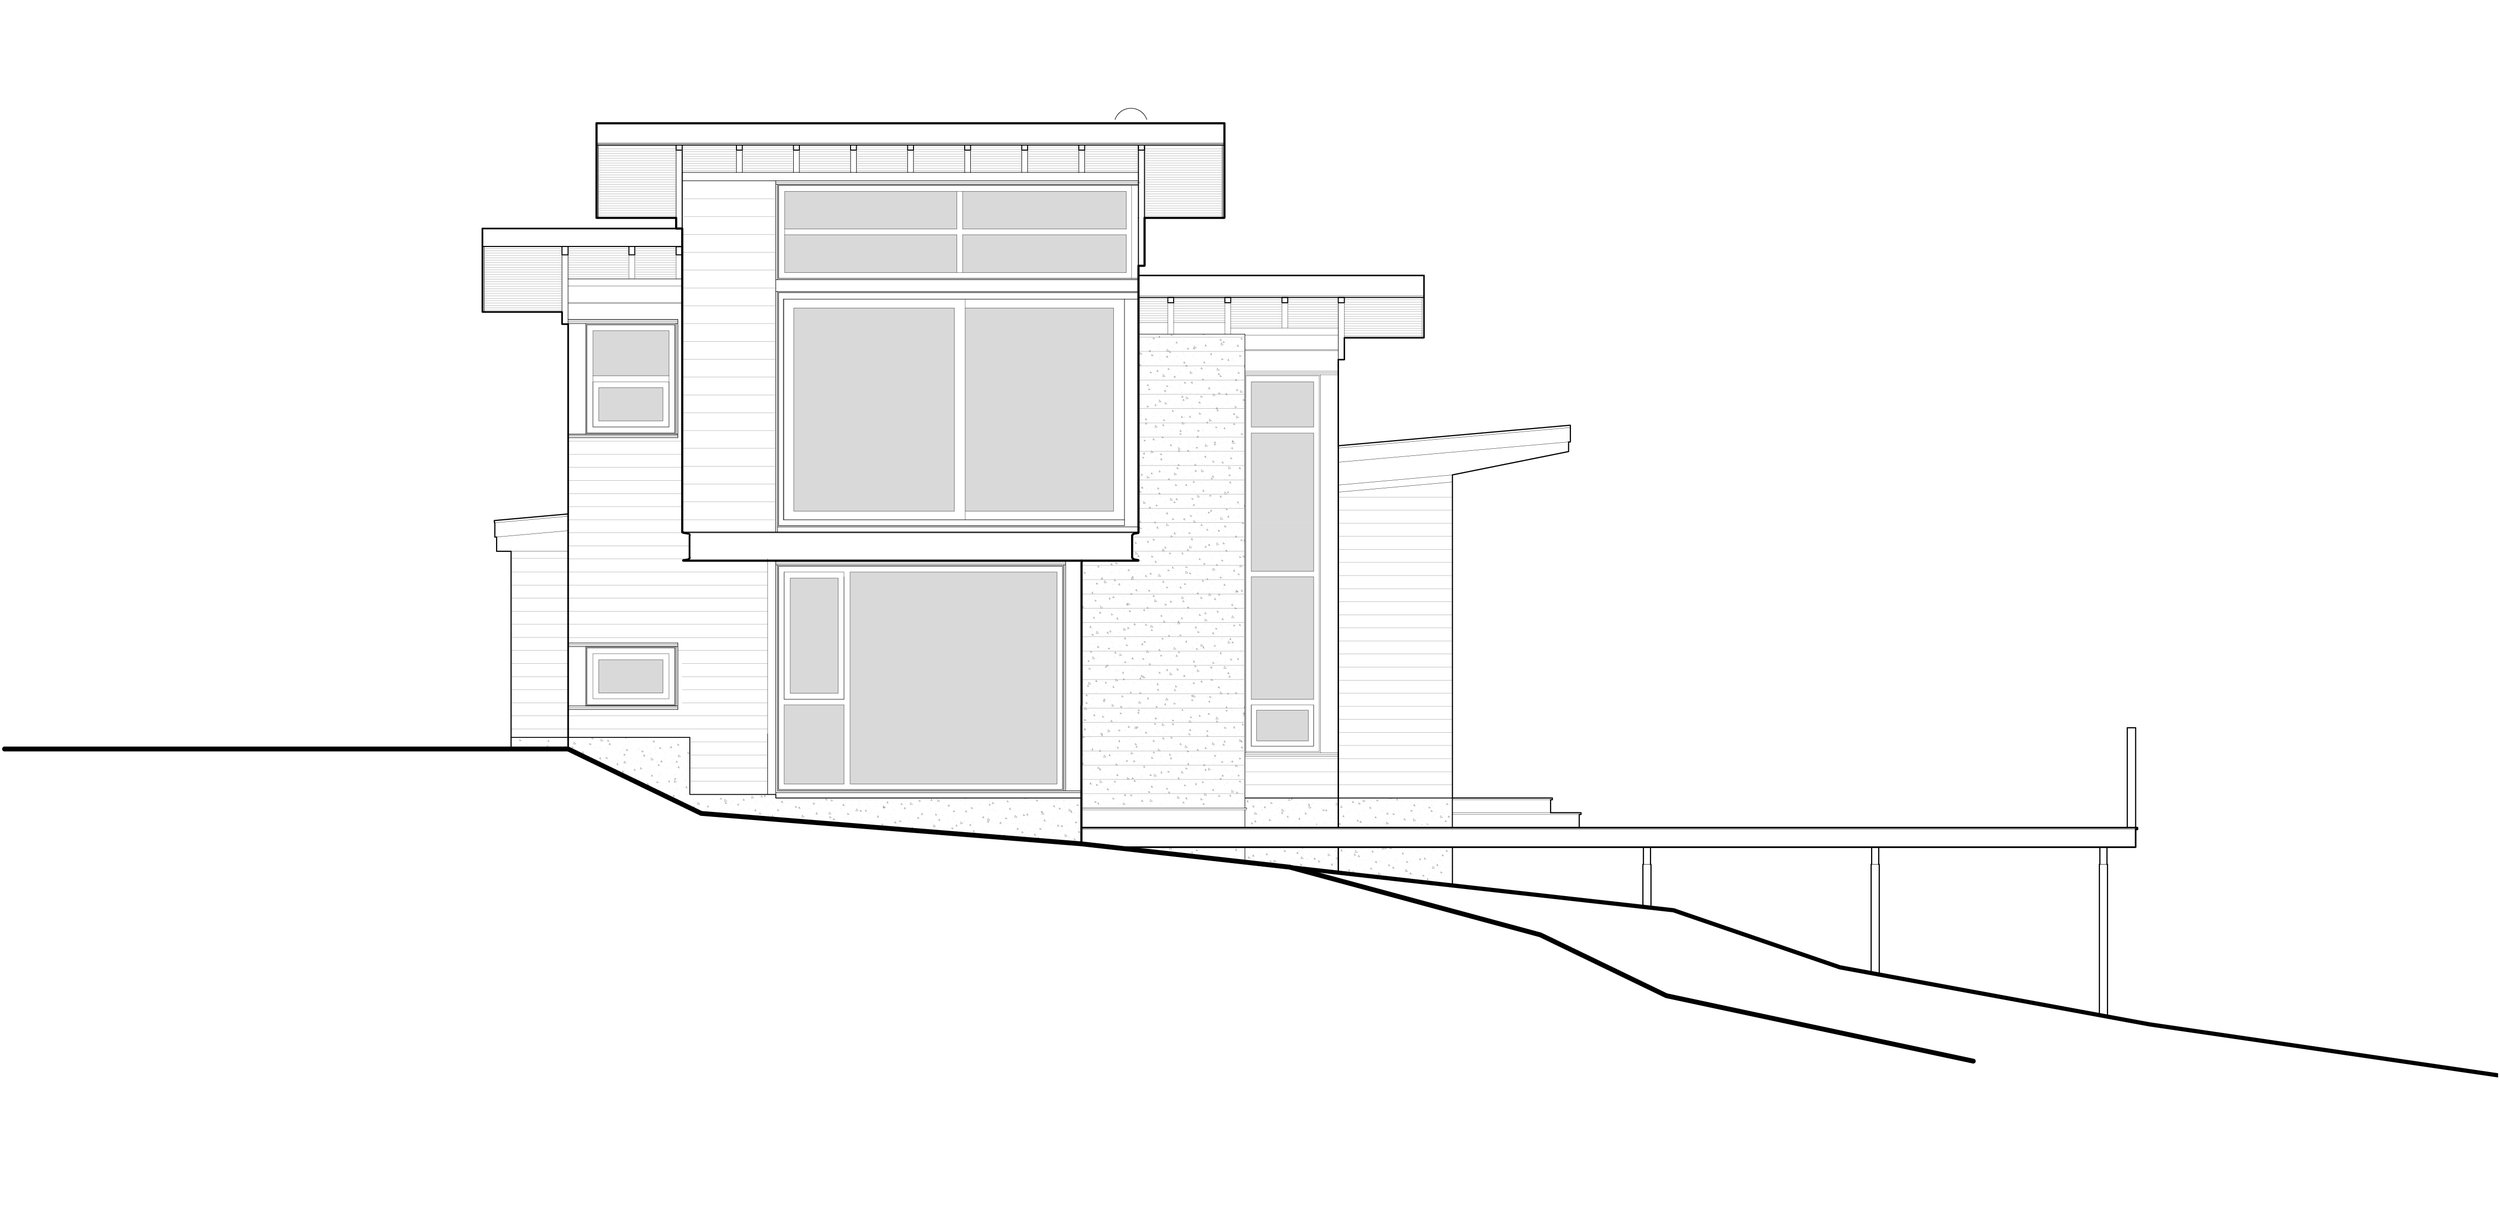 Pozer_20181011_Presentation North Elevation.jpg